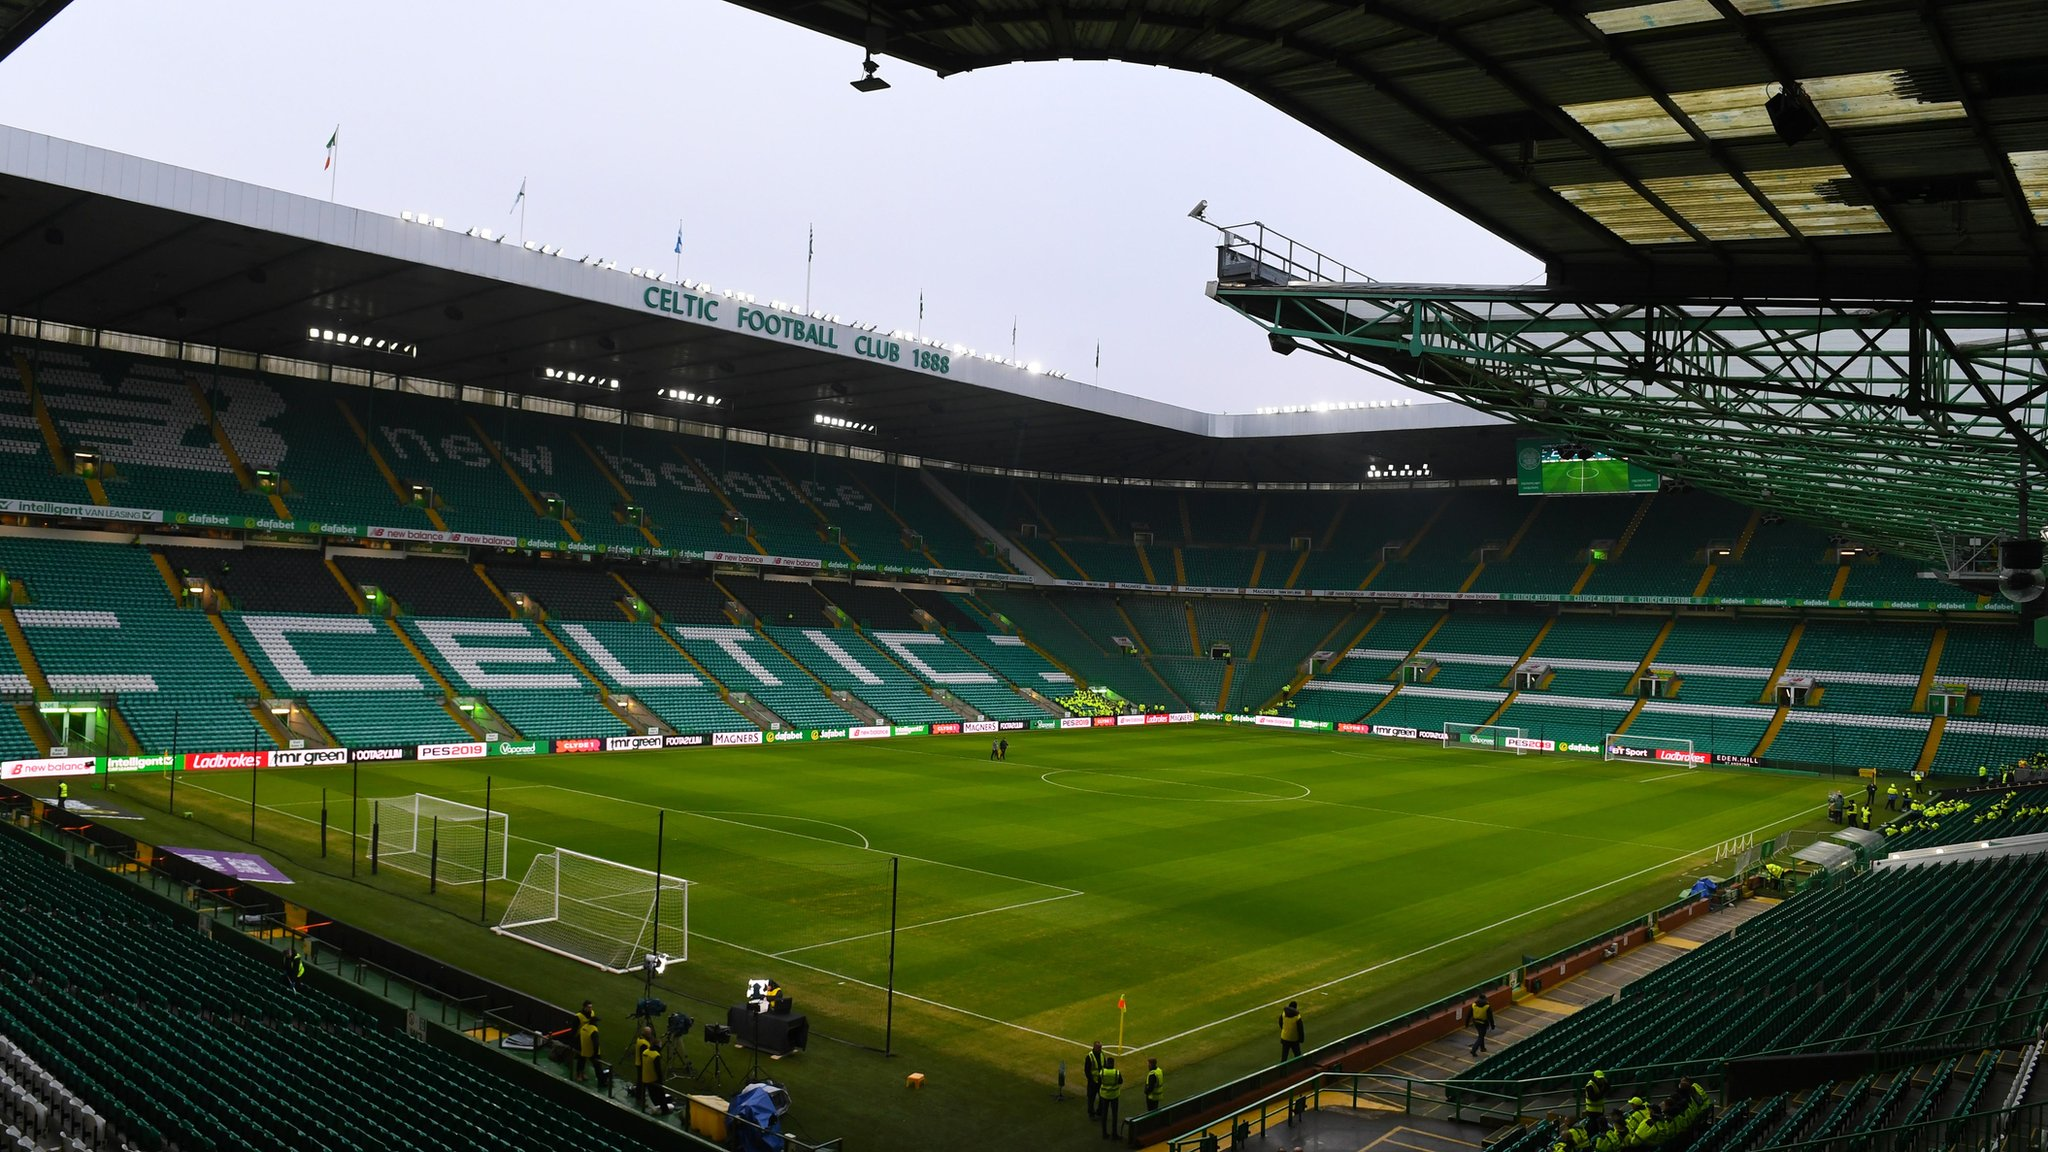 Brendan Rodgers: Celtic Park's new hybrid pitch 'slightly diseased'